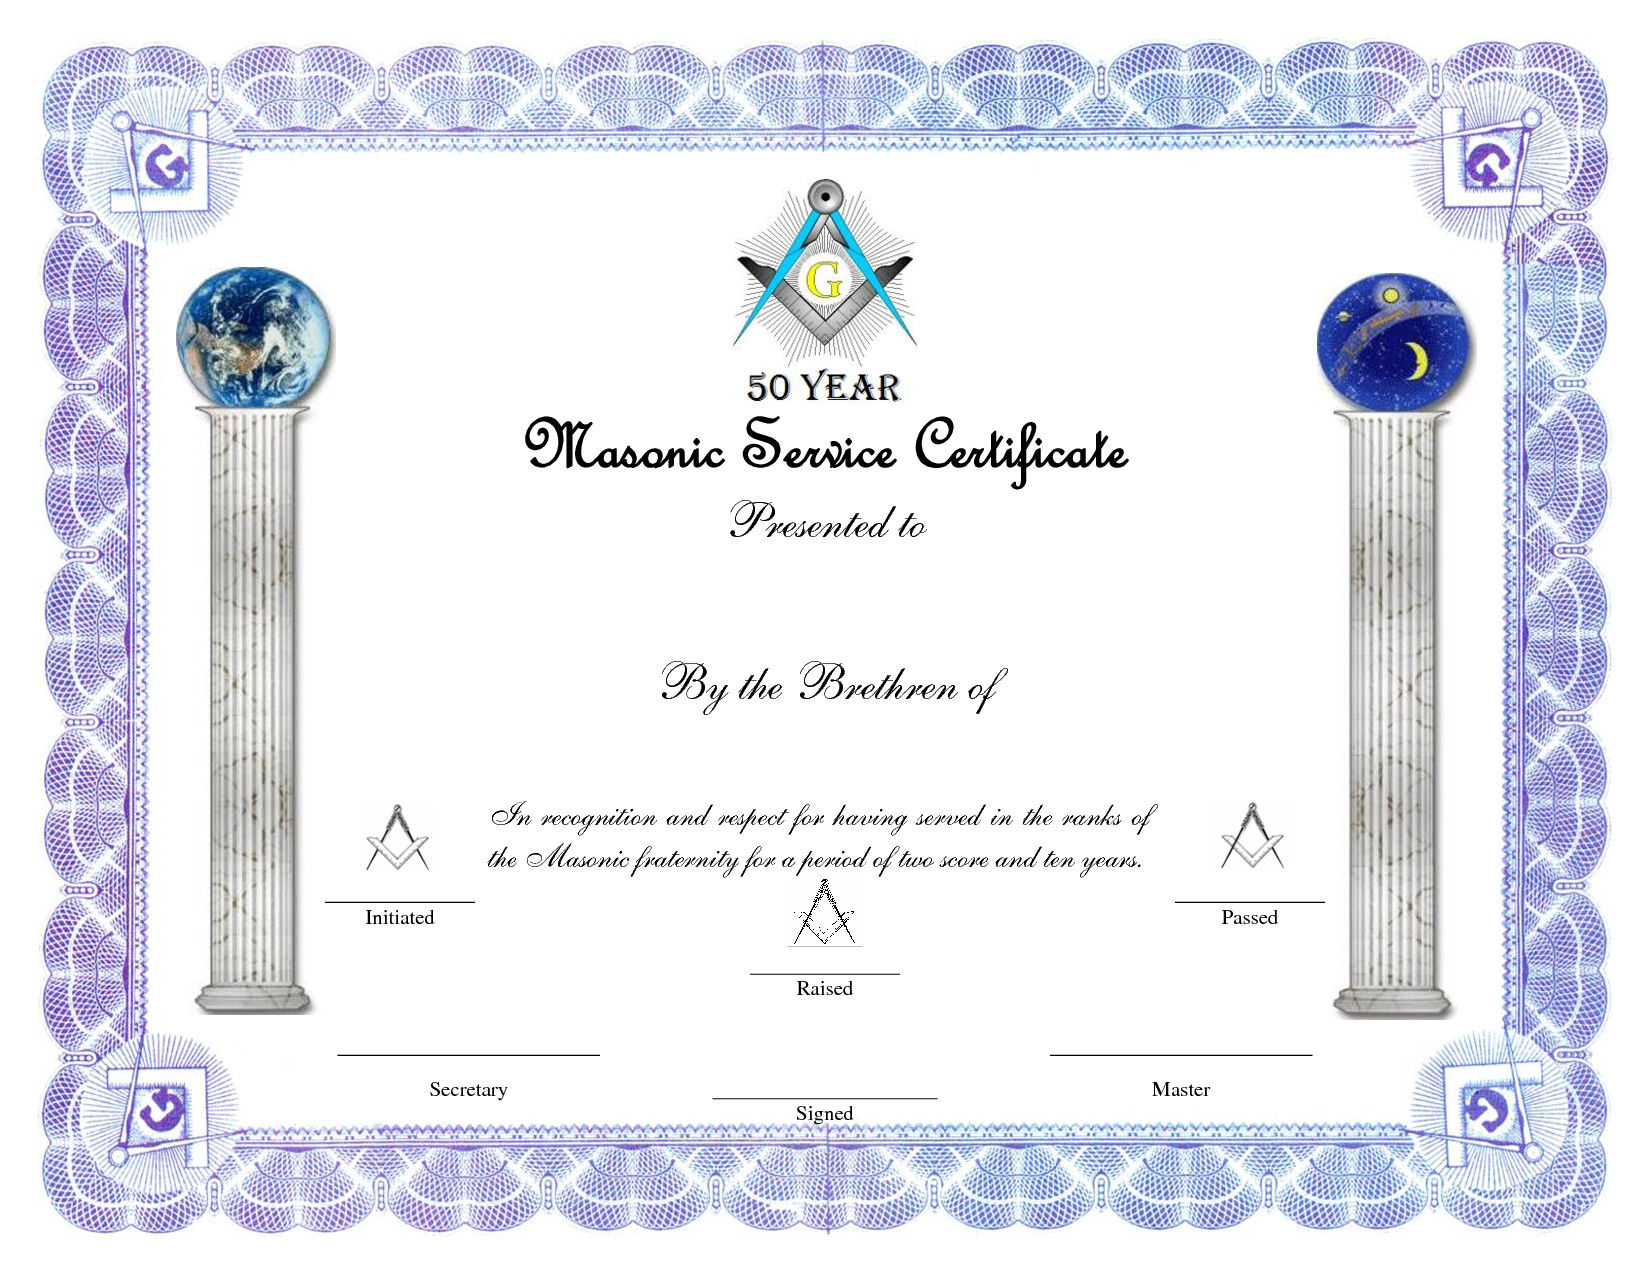 Masonic Certificate Template Free order Essay From Experienced Writers with Ease How to